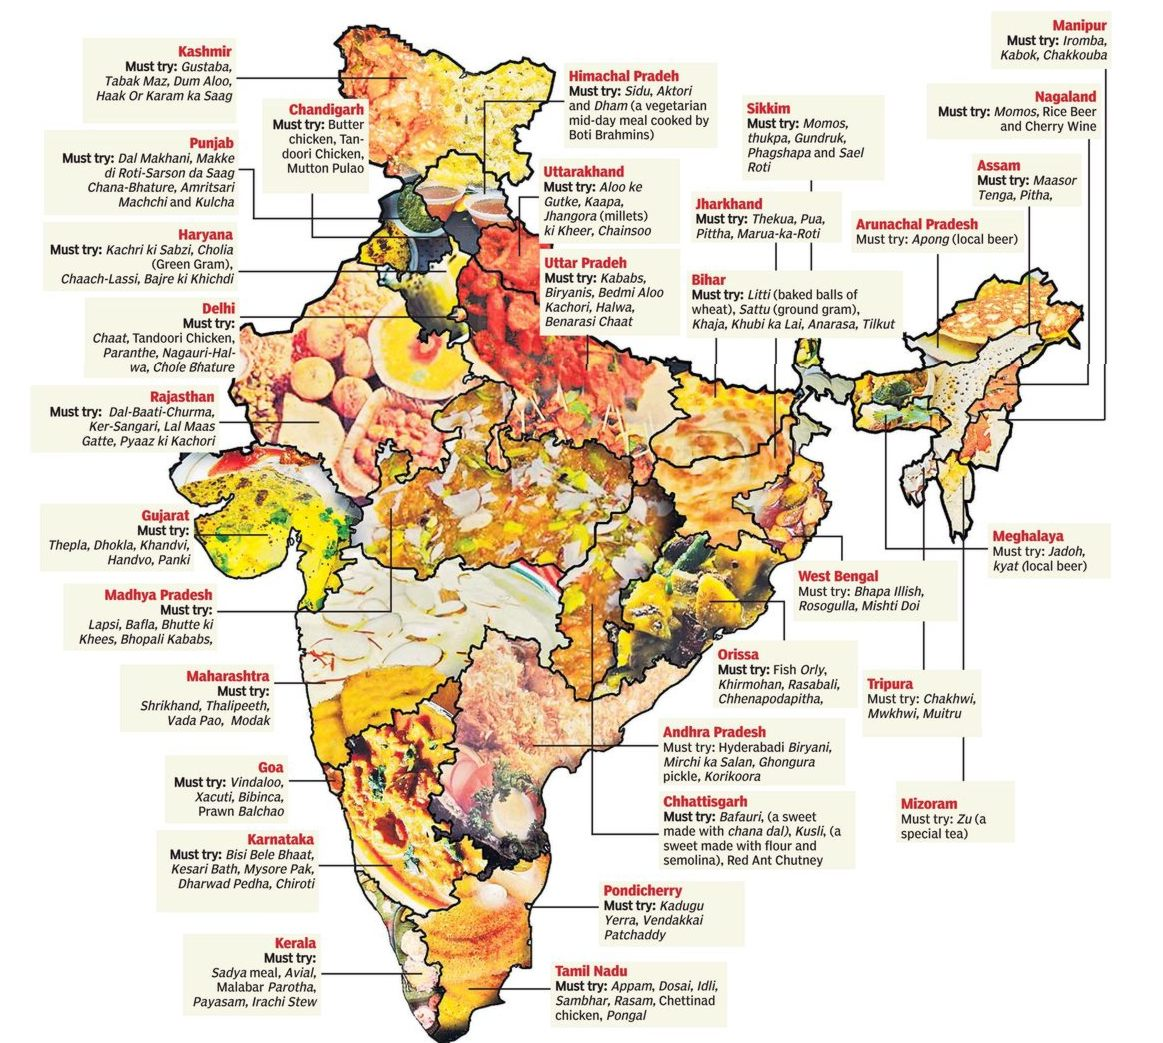 Upsc general studies and current affairs 2015 june 2012 - Different types of cuisines in the world ...